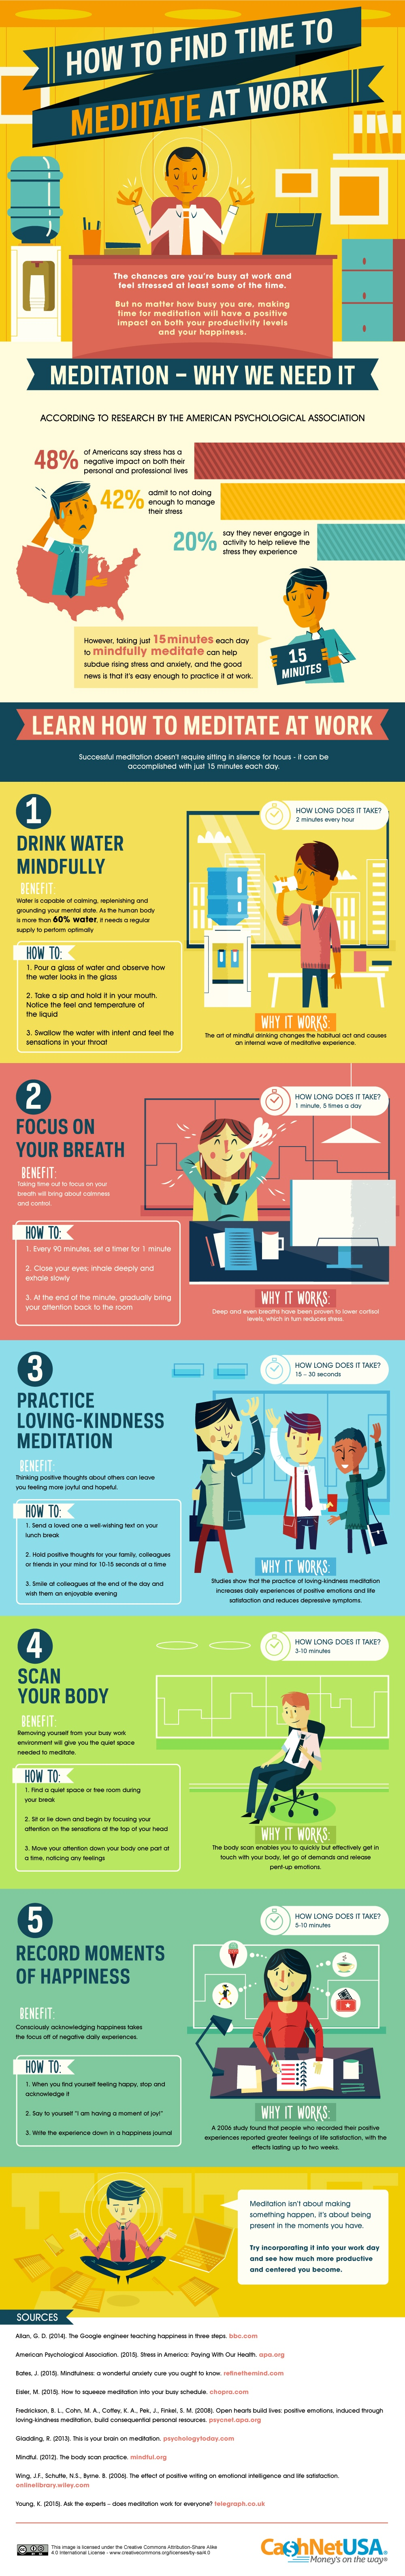 meditation-at-work-infographic.jpg